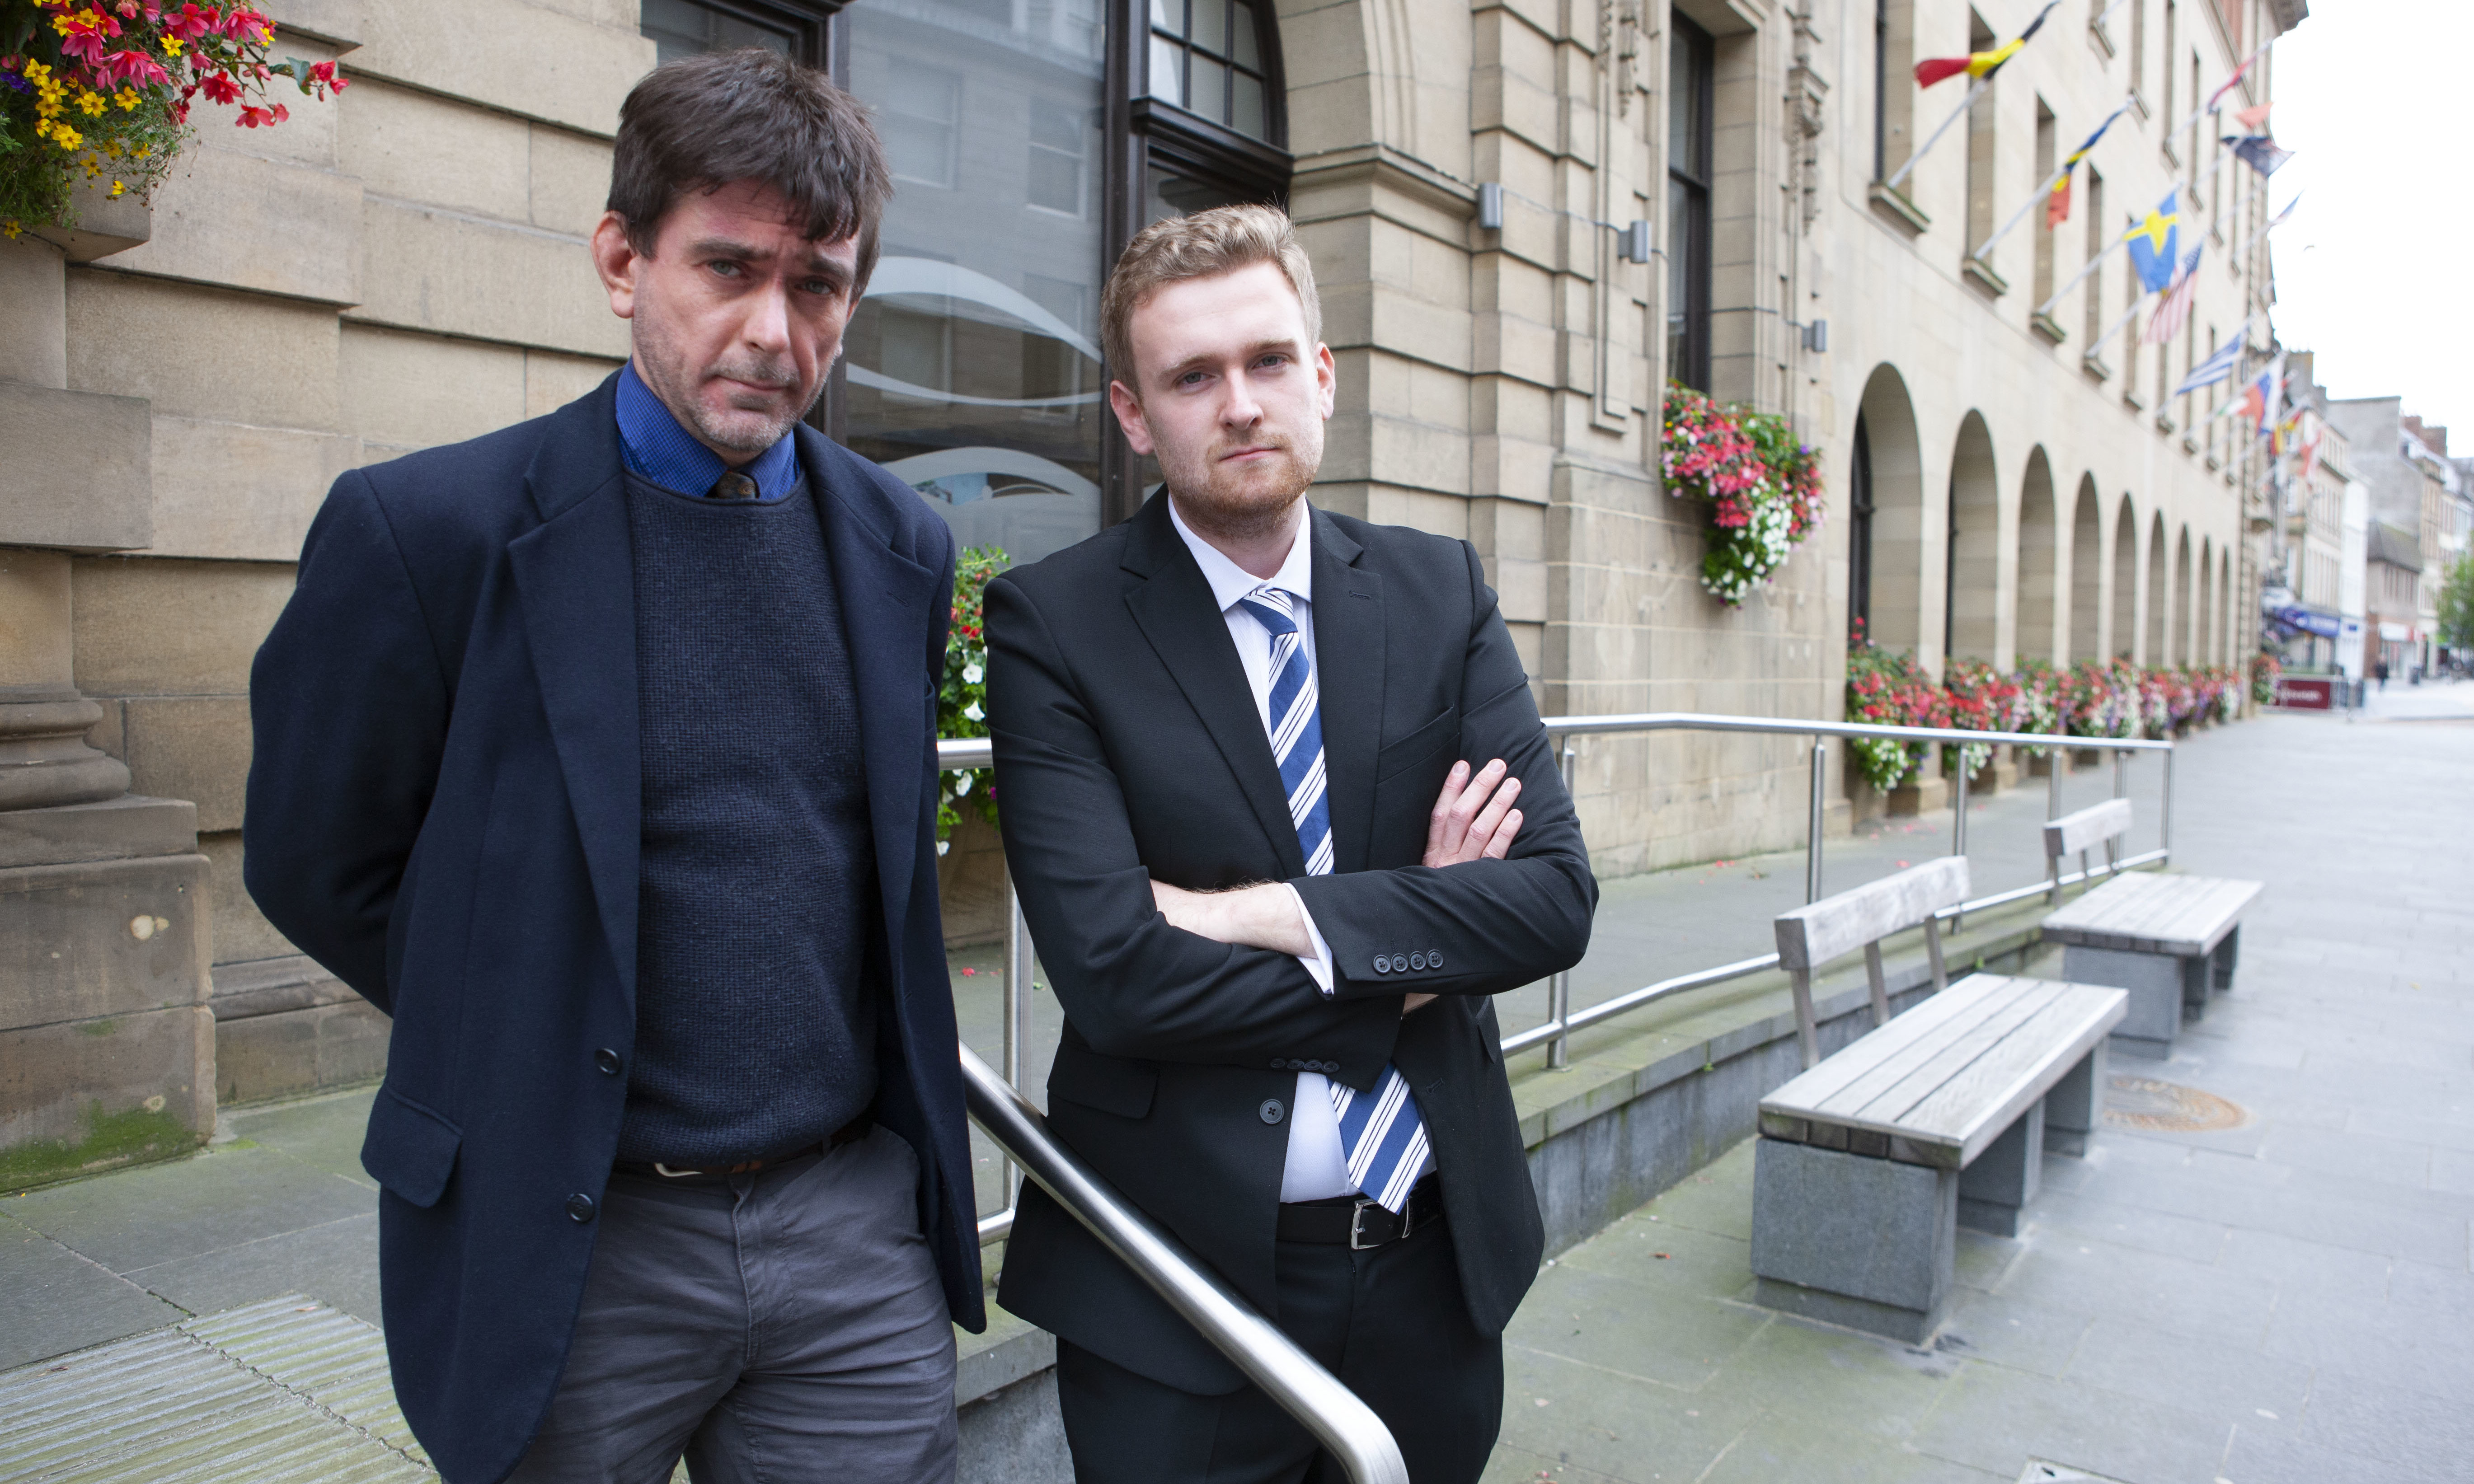 Councillors Colin Stewart and Callum Purves (library photo, taken before lockdown)